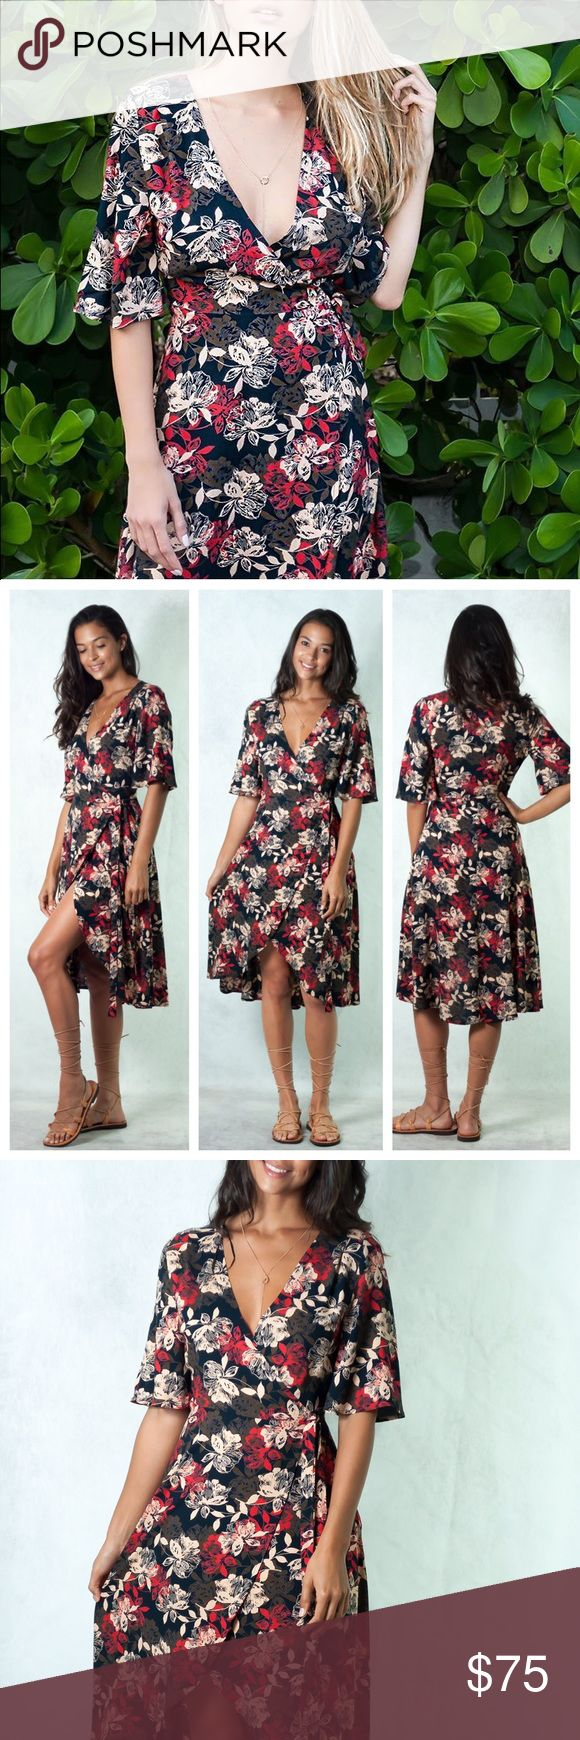 'Love Me So' Wrap Dress Wrap it around and be ready for any occasion. Flattering Silhouette, that will make you feel comfortable, effortless and sexy.    •Wrap midi dress •A cut in bottom front •Short semi wide sleeves •Plunging v-neckline •Same print attached sash •Relaxed fit •Unlined   Model Stats Model is US size 2 / Small [wearing Small] Height: 5'9 / Bust: 34B / Waist: 25 / Hips: 37 Dresses Midi